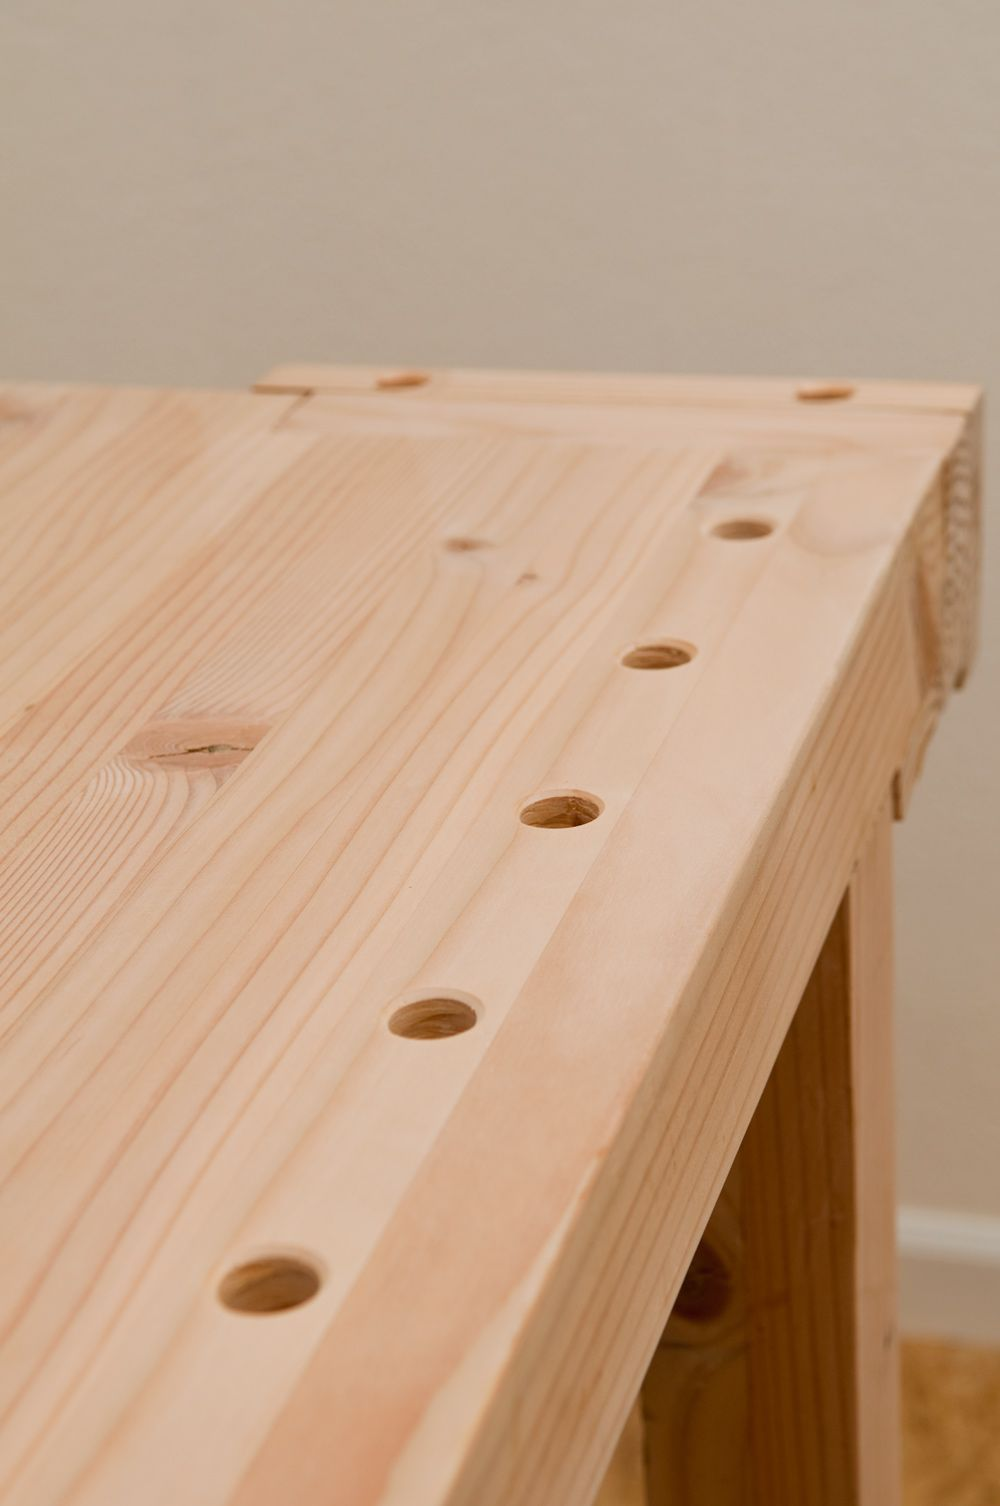 How To Drill Perfectly Vertical Bench Dog Holes In Your